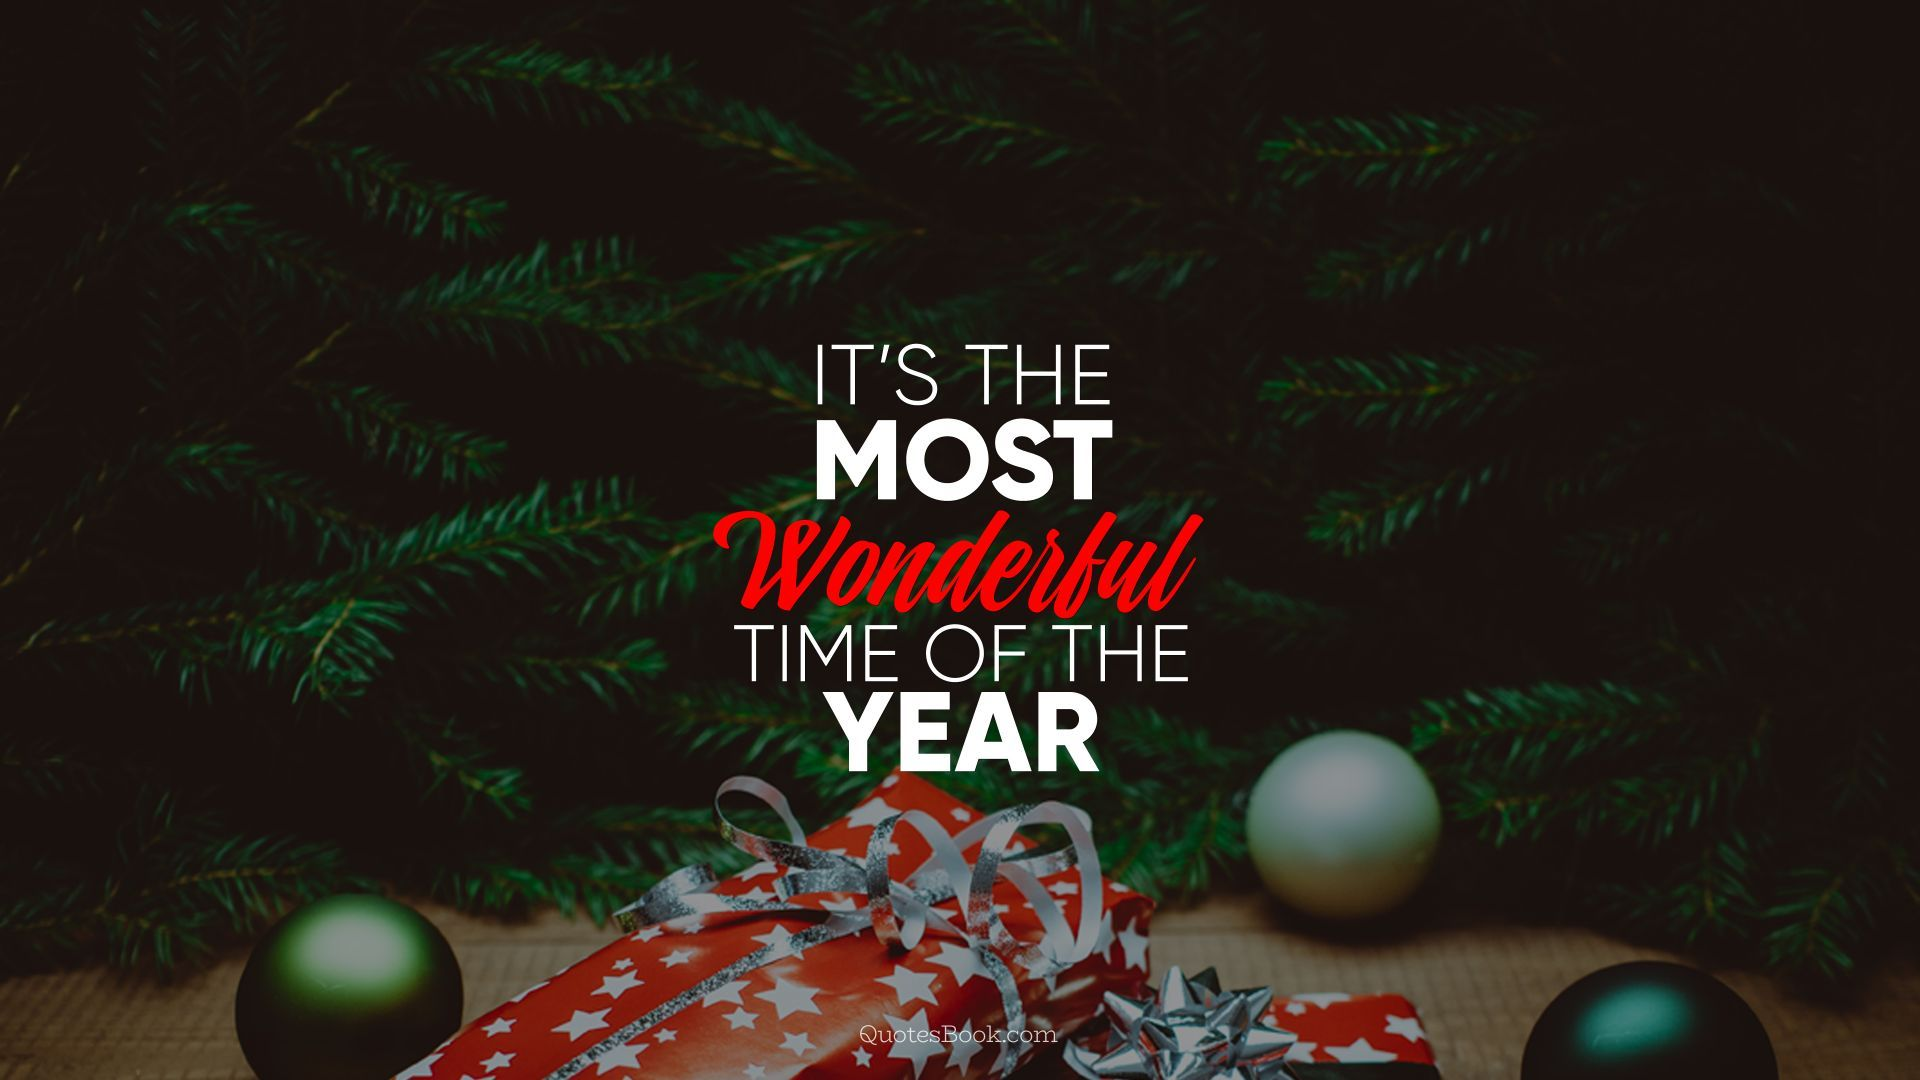 quotes newyear newyear2019 newyearquotes ny 2019